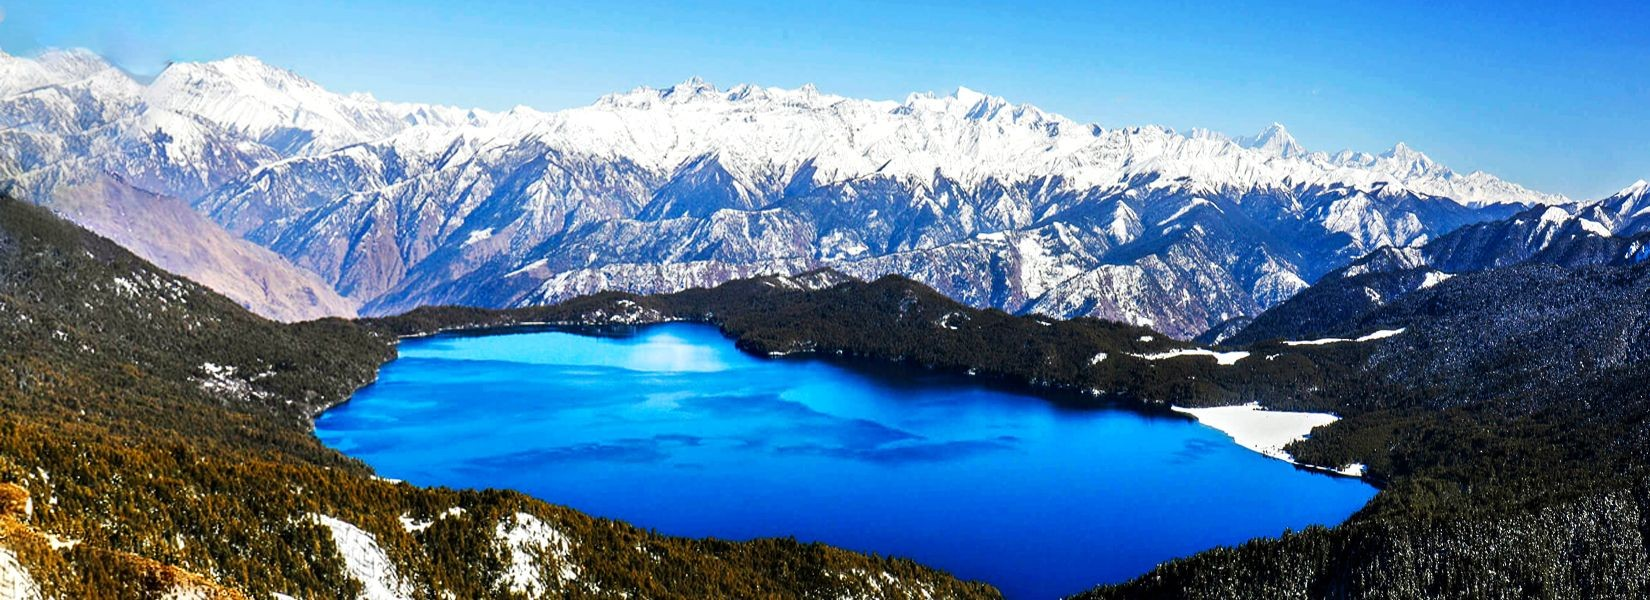 Rara lake, Rara lake trek